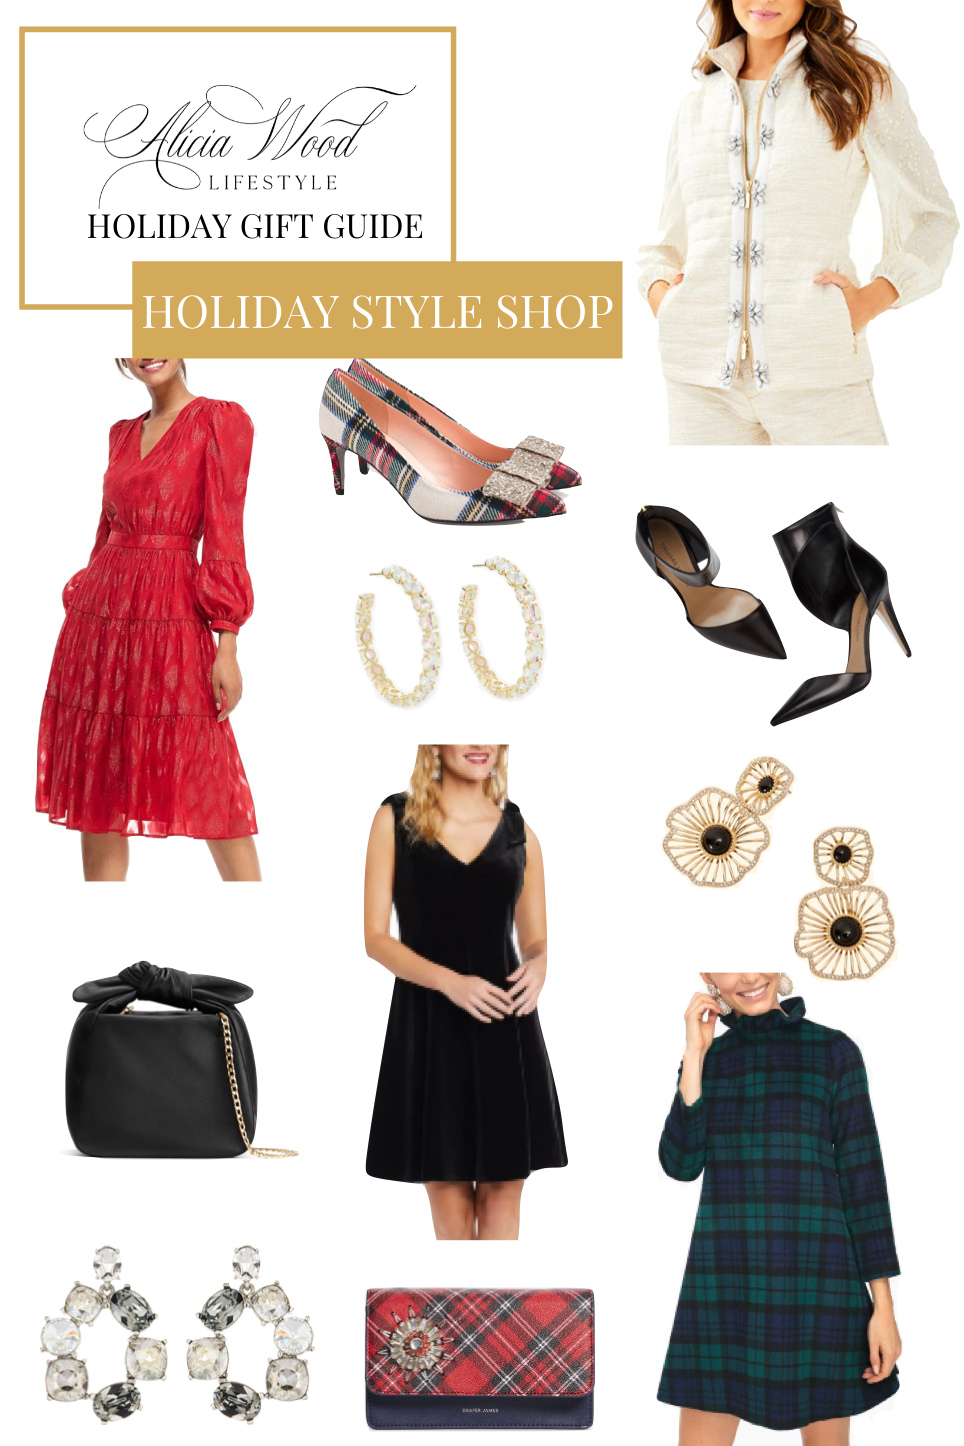 Five Christmas Party Looks You'll Love + Holiday Style Shop